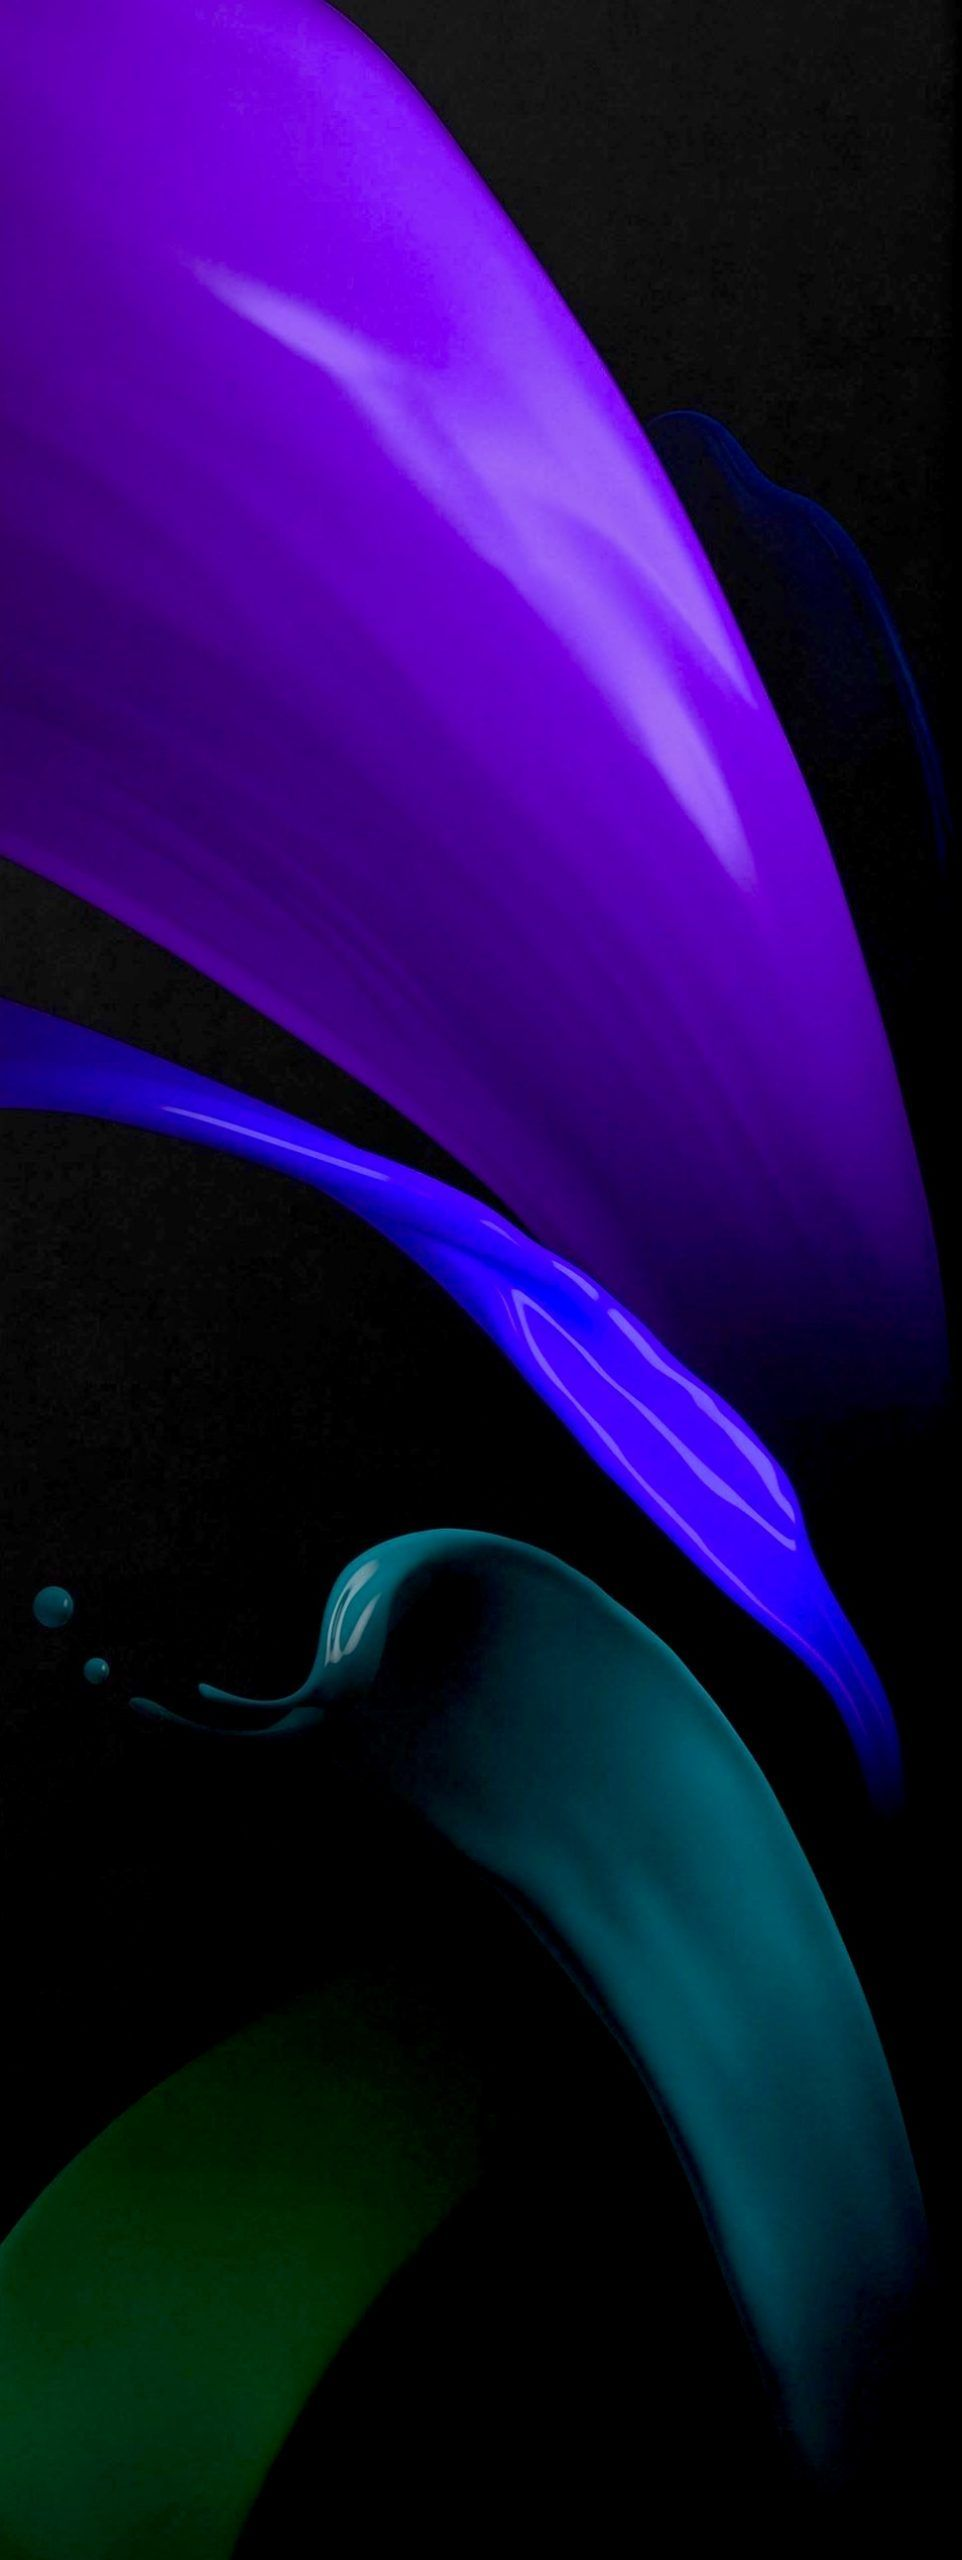 Samsung M51 Wallpapers Wallpaper Cave